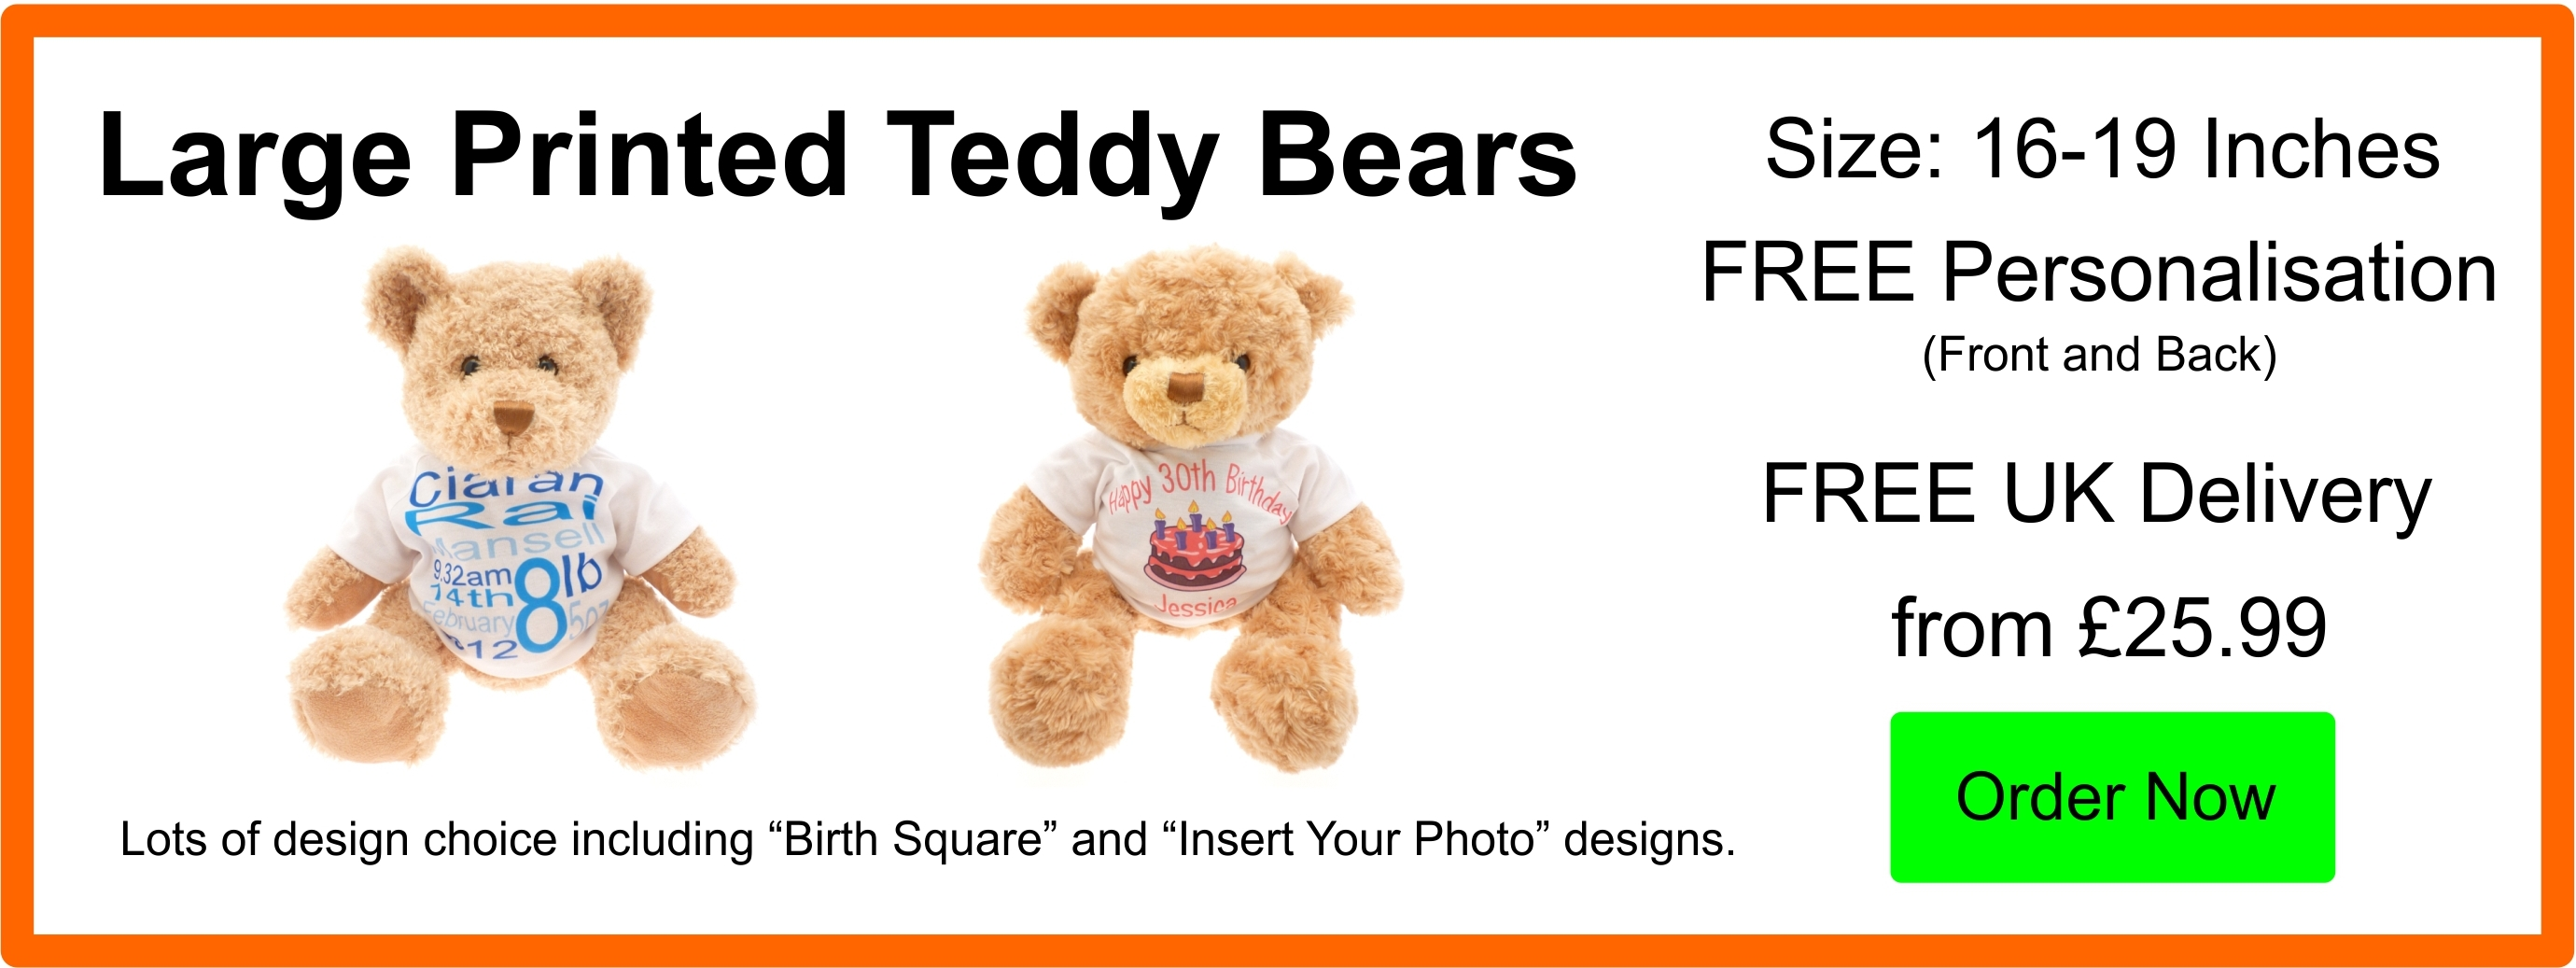 Personalised Large 16 Inch Printed Teddy Bears From £26.99